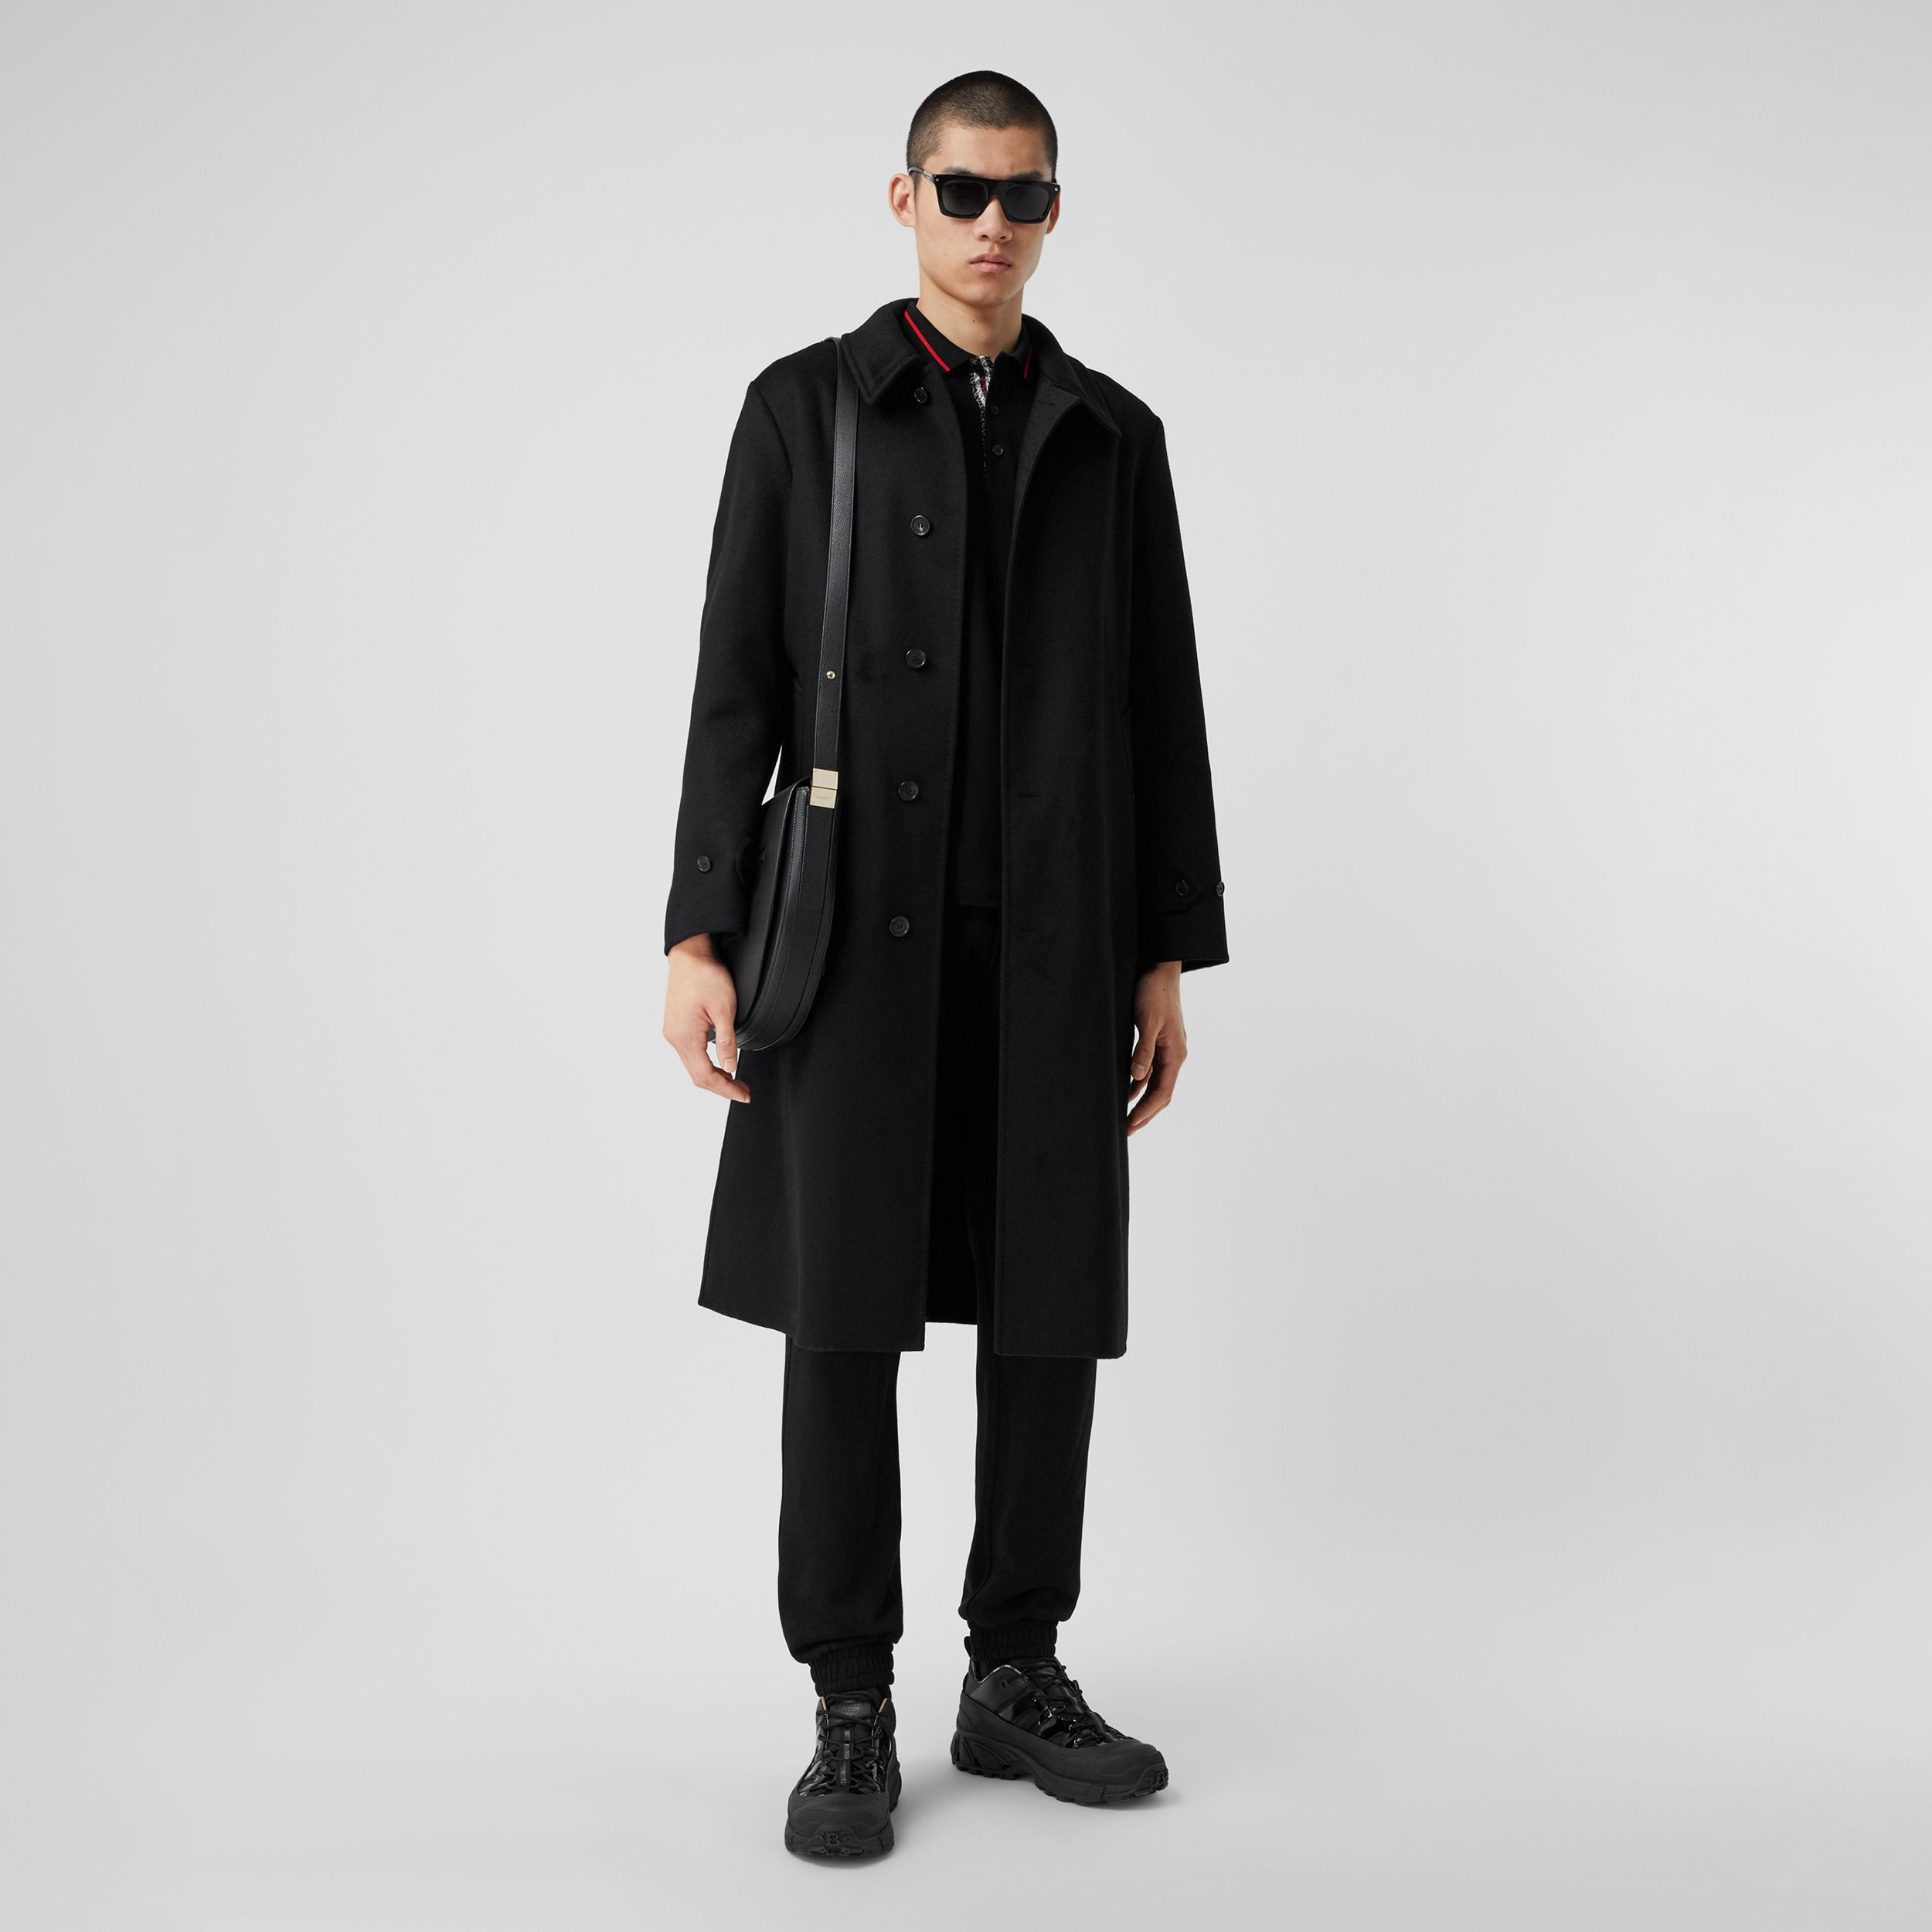 Monogram Detail Double-faced Cashmere Car Coat in Black - Men | Burberry - 1